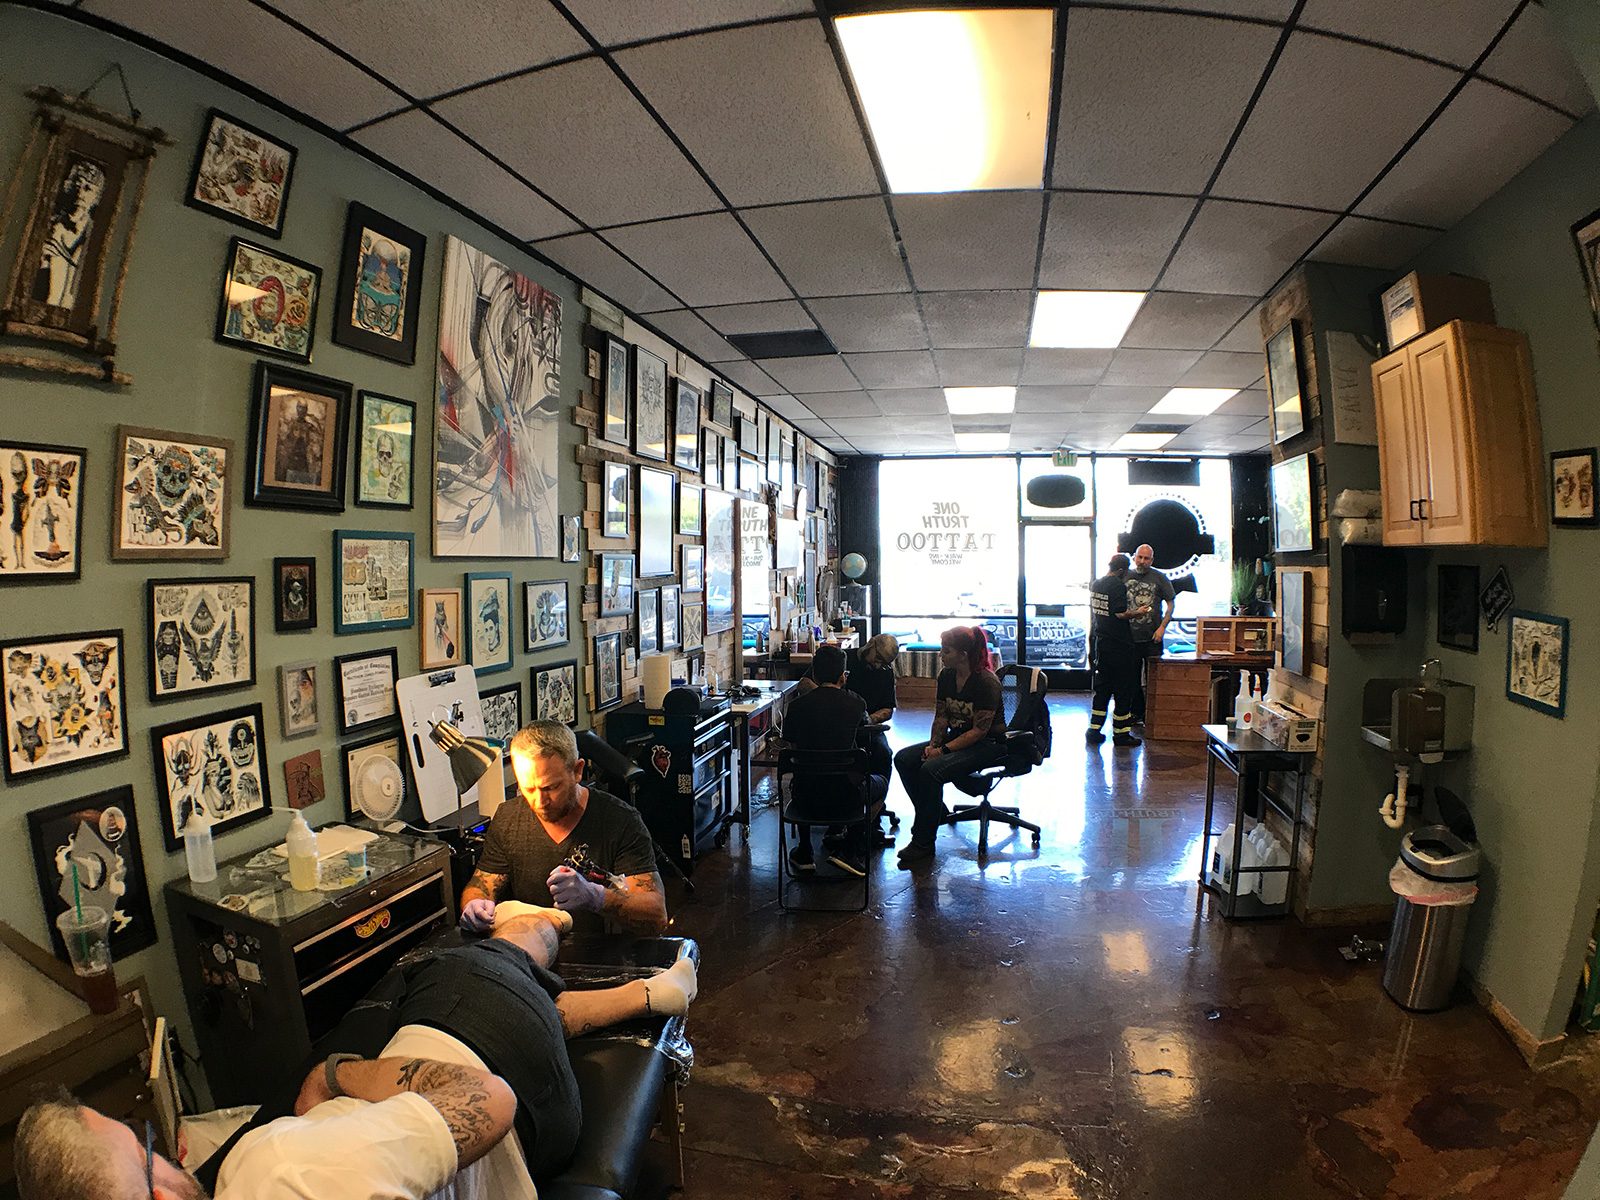 One Truth Tattoo in Northridge, CA by Jets Like Taxis